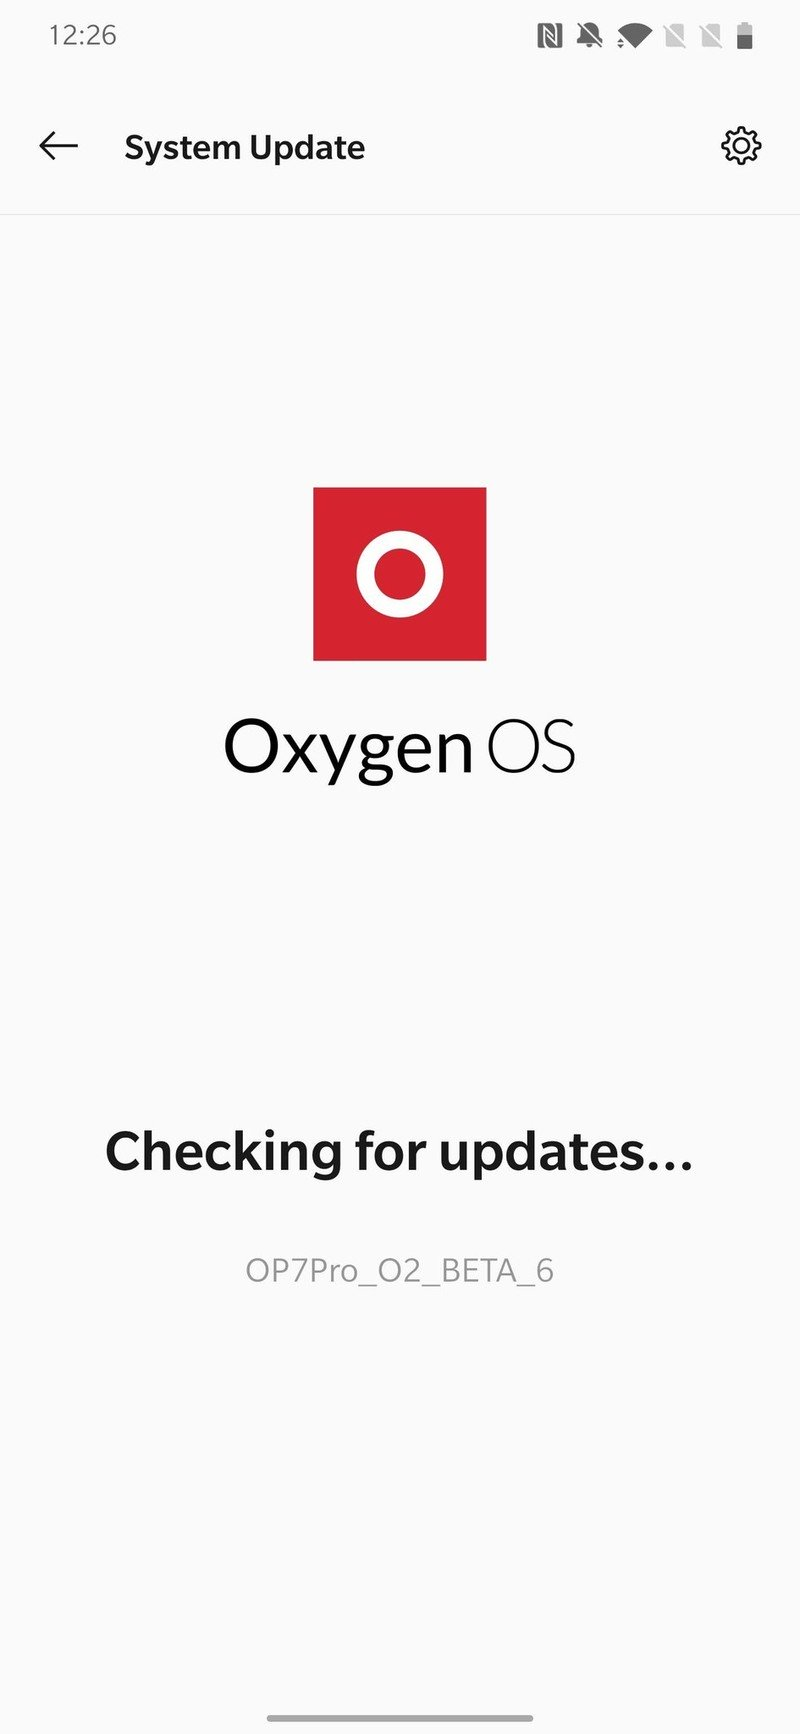 oneplus-how-to-update-software-4.jpg?ito